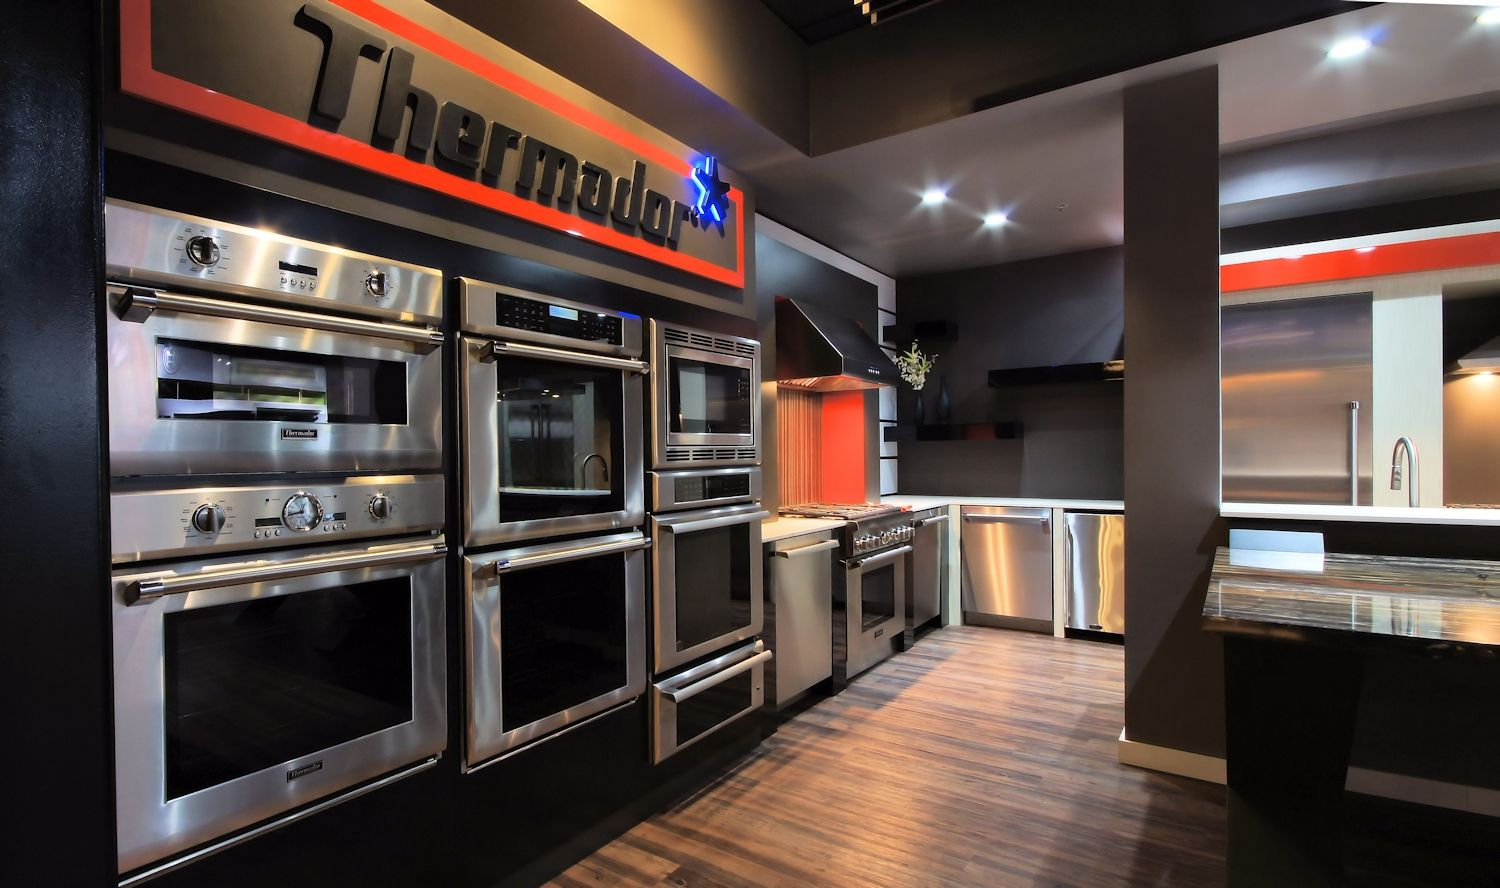 thermador appliance showroom - Google Search | Kitchen ...